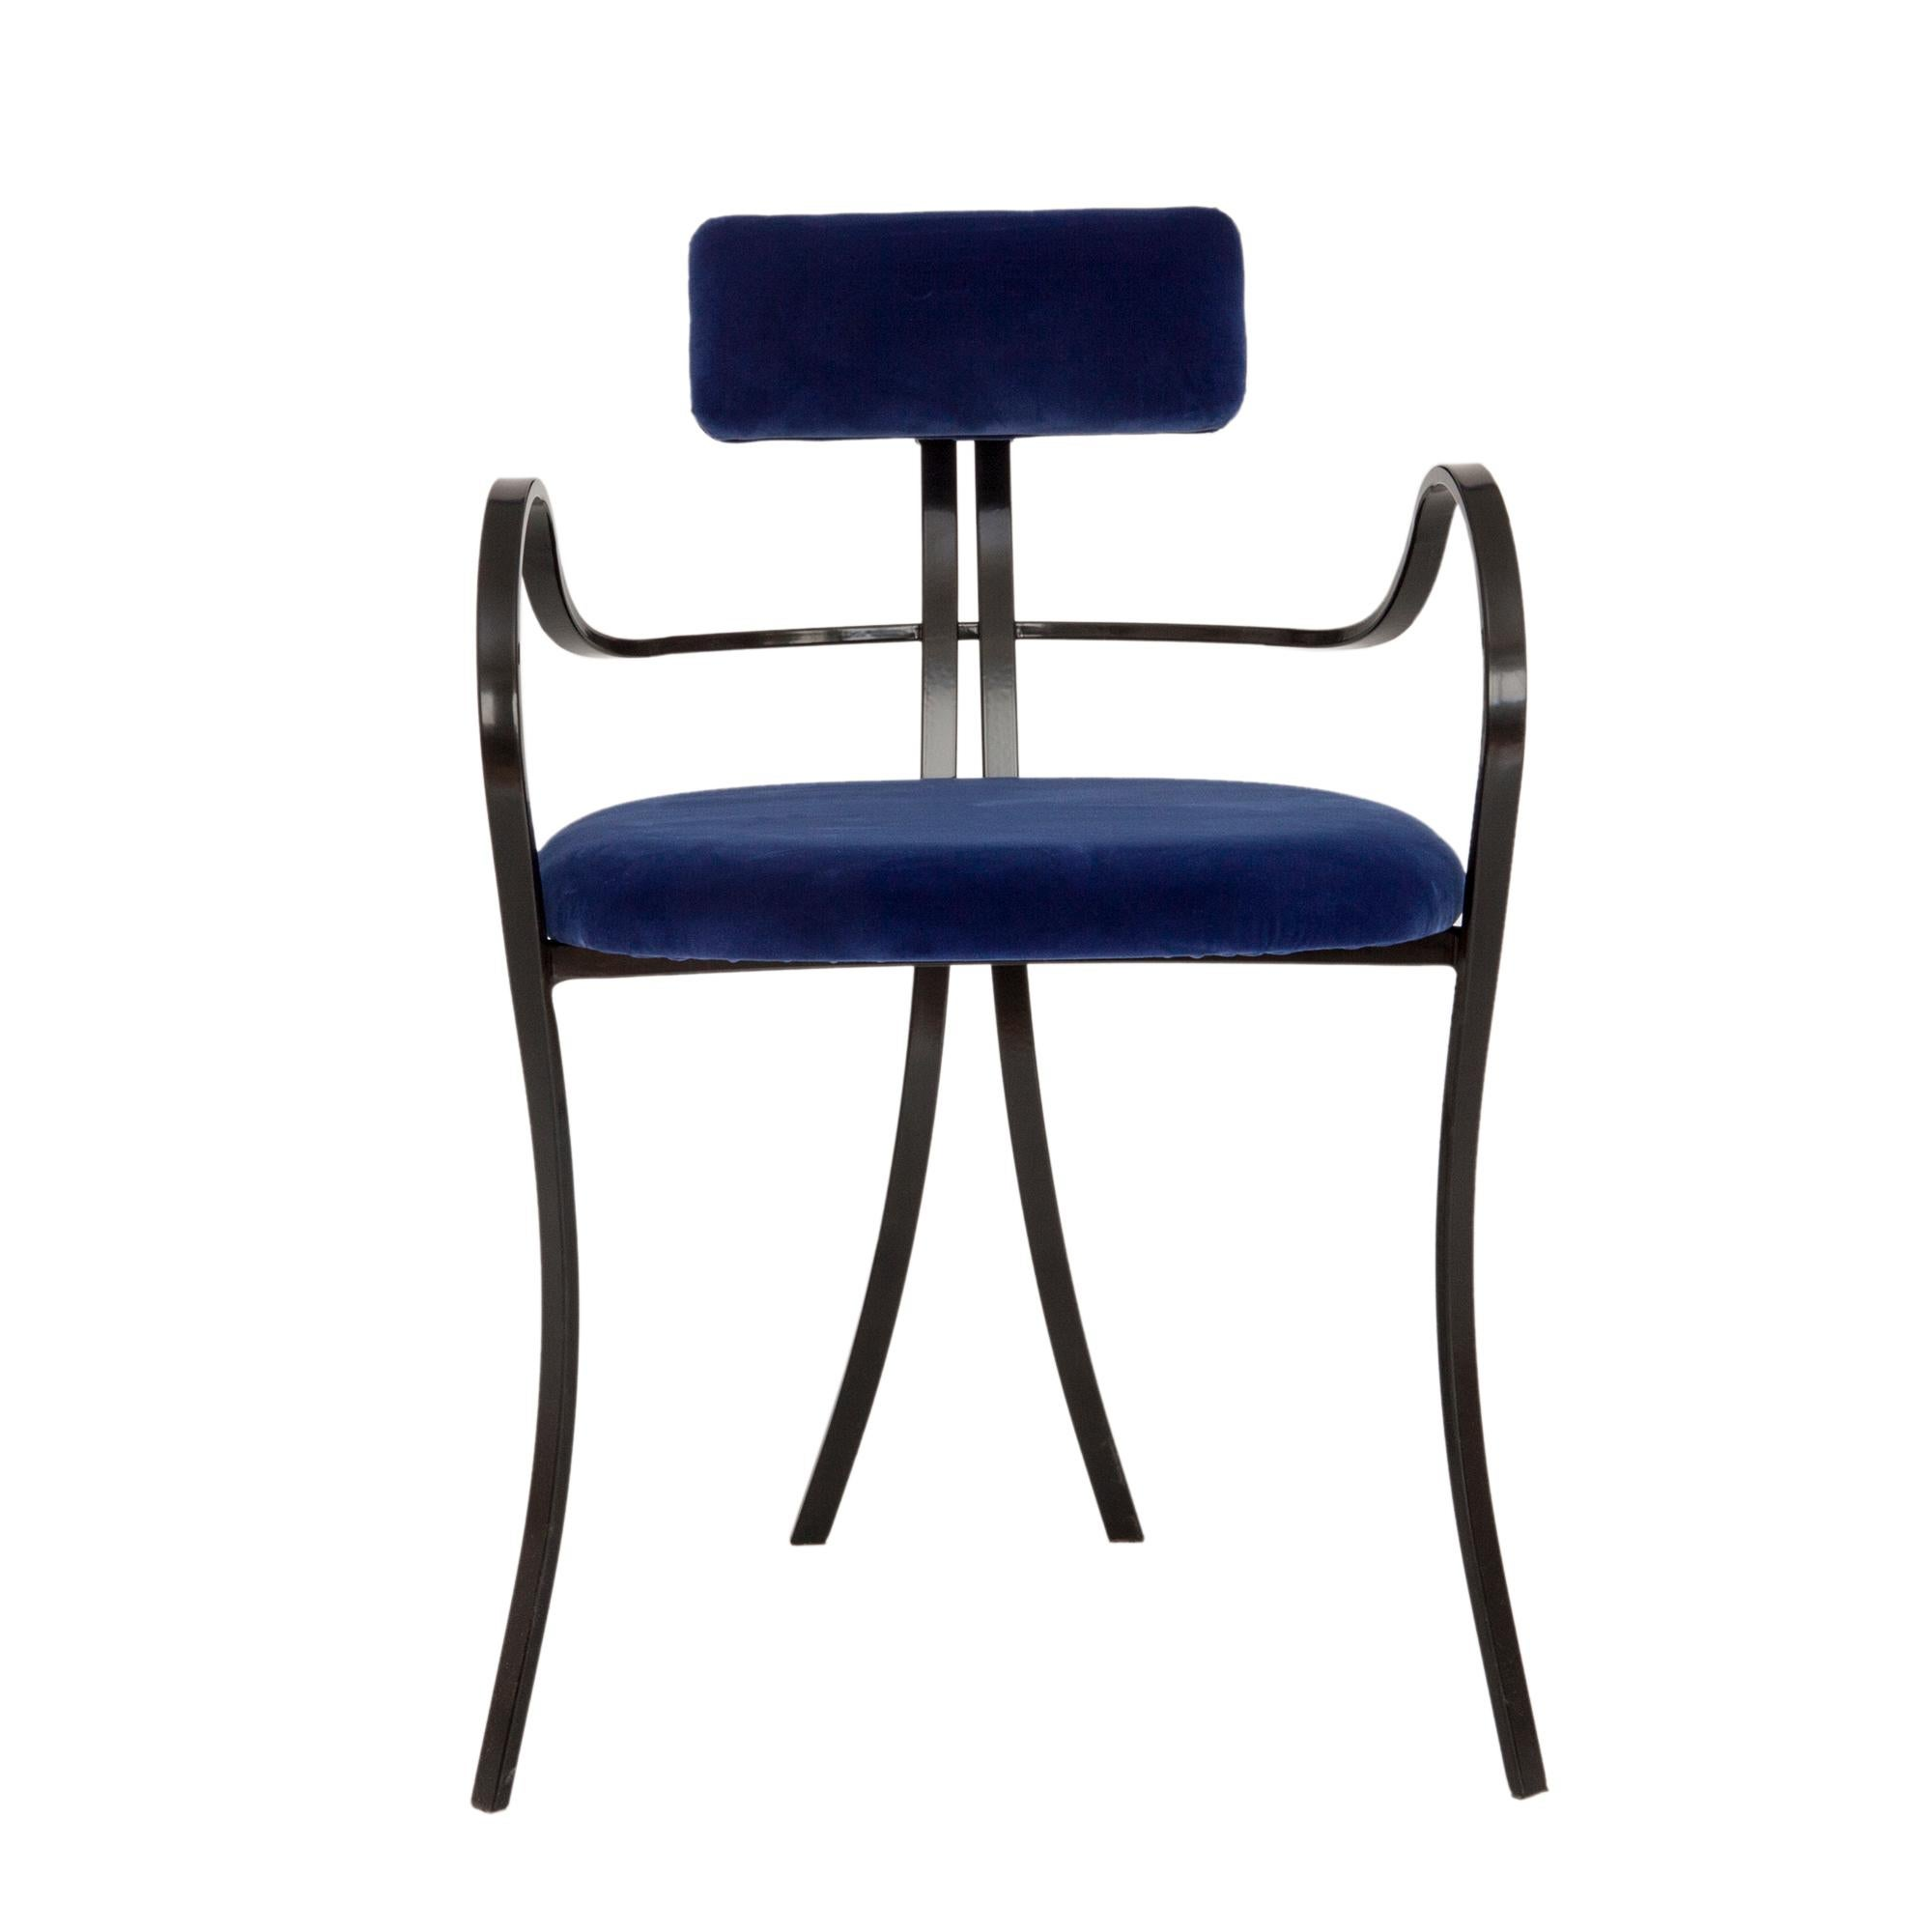 Contemporary Violet Chair with Velvet Seat and Seatback in Blue Color